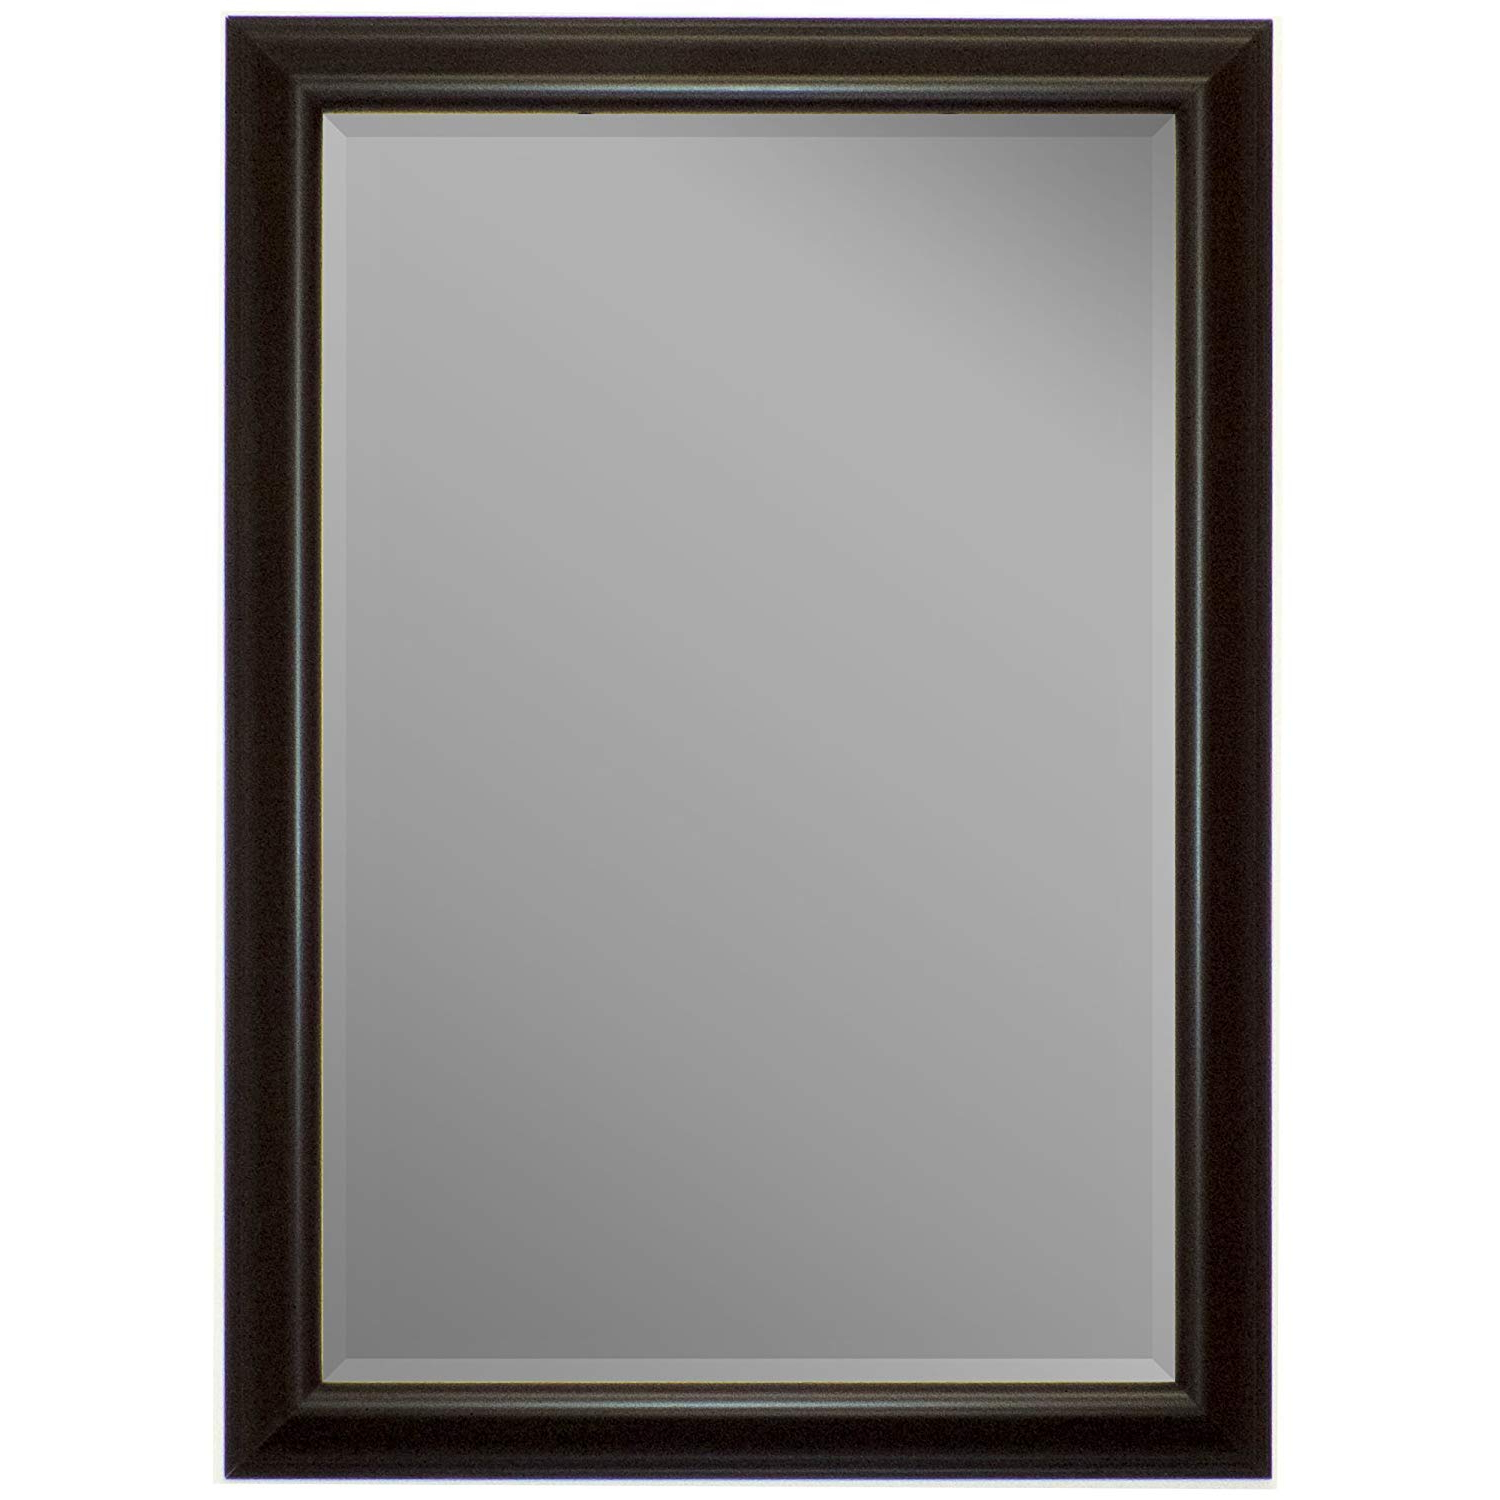 Black Frame Wall Mirrors Regarding Widely Used Amazon: Second Look Mirrors Glossy Silver Smoked Black Framed (View 10 of 20)